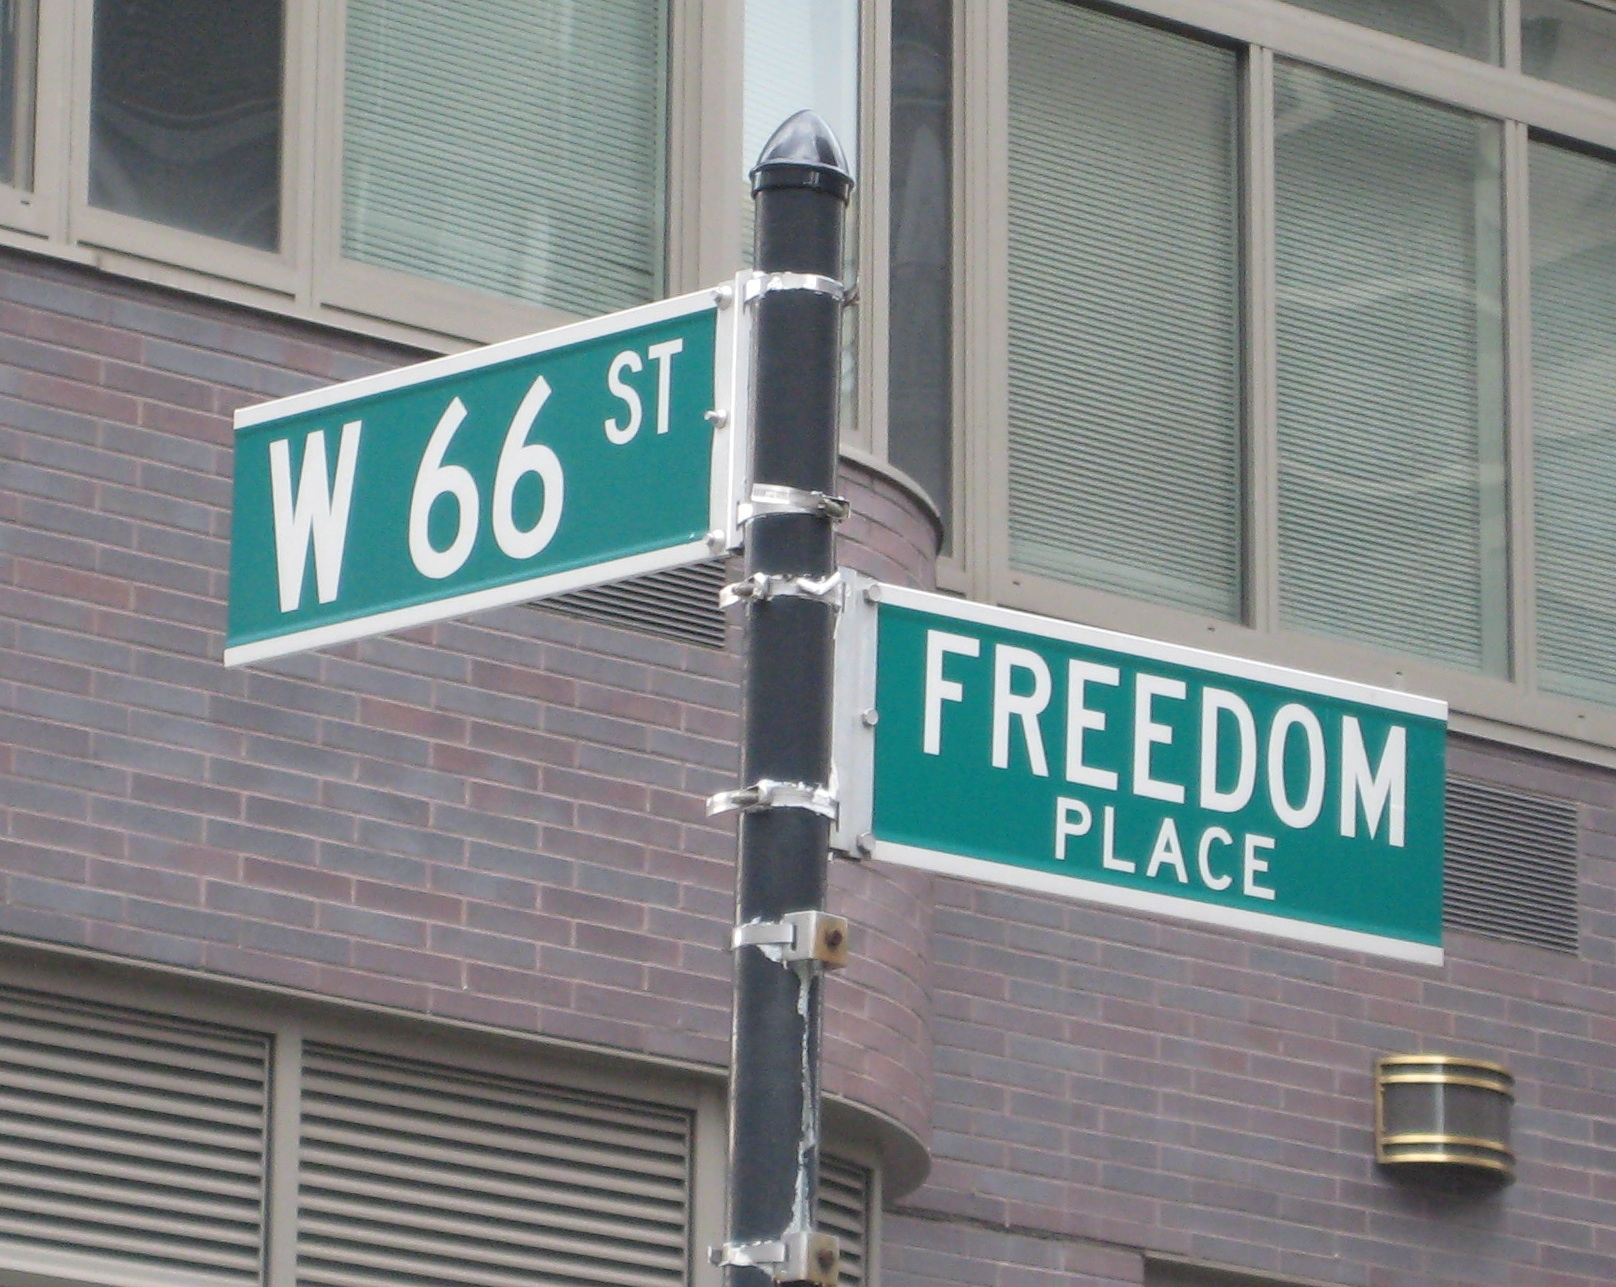 The story behind a little-known West Side street | Ephemeral New York